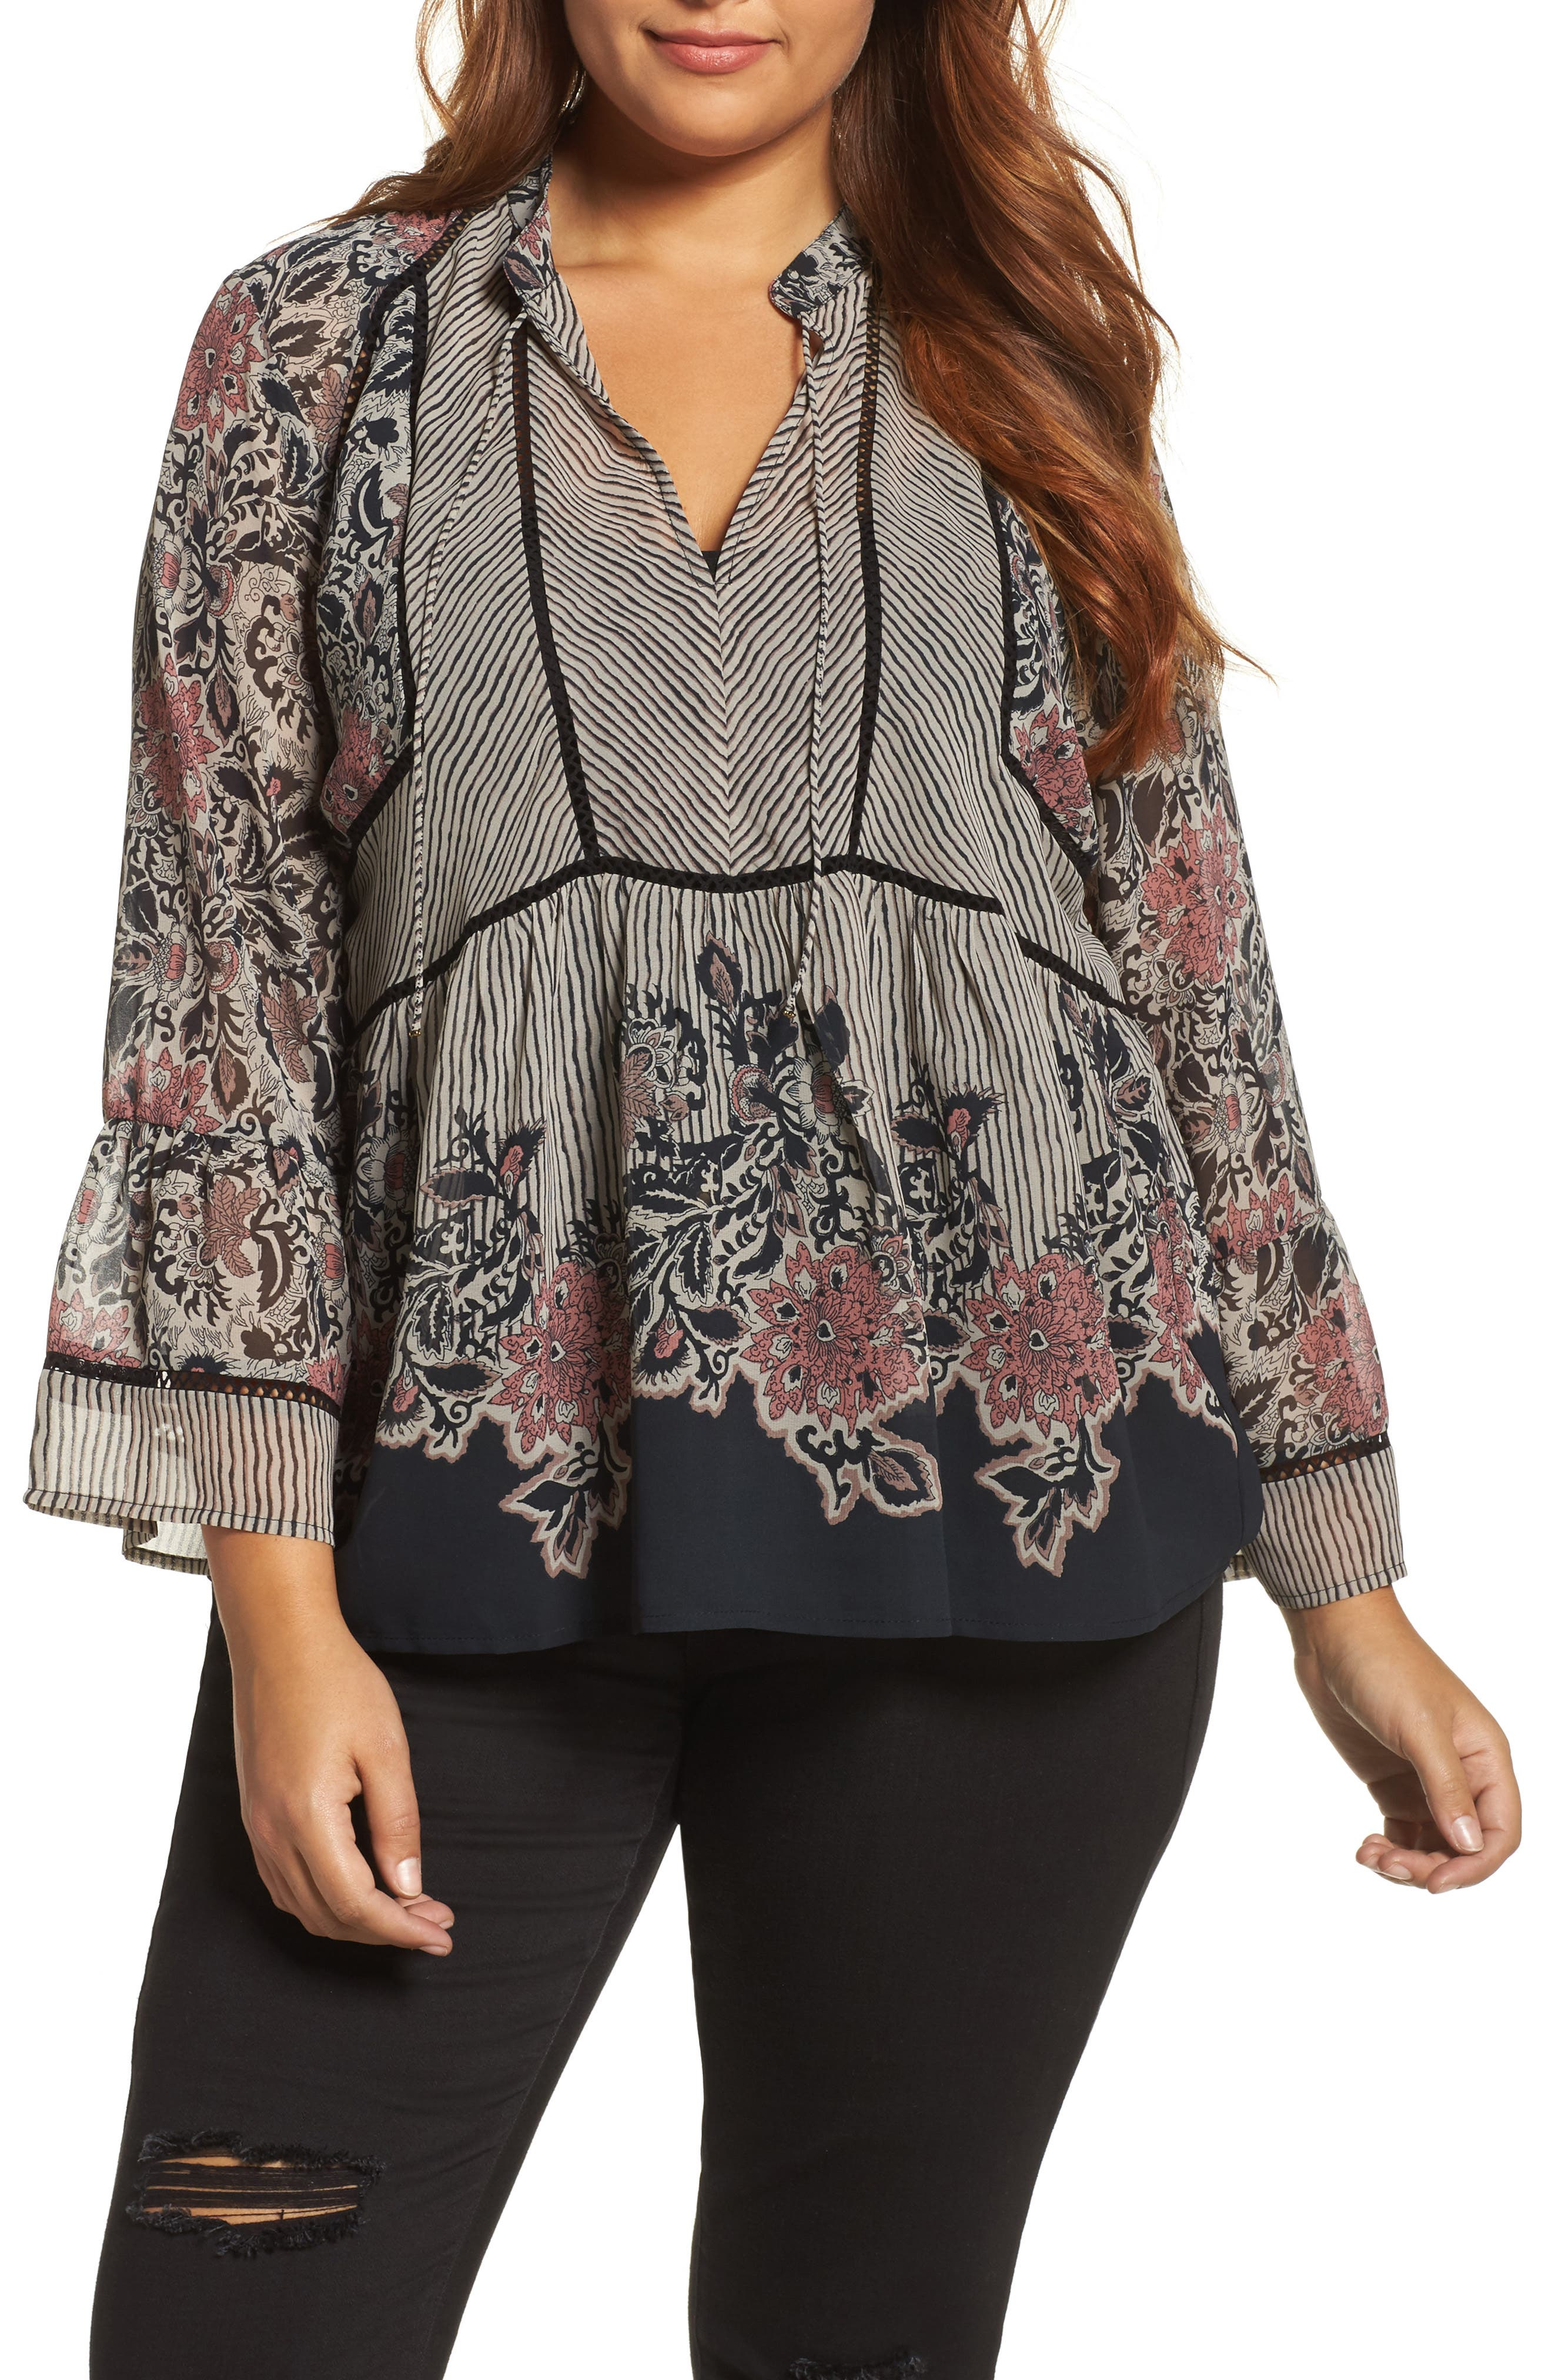 Alternate Image 1 Selected - Lucky Brand Mixed Print Top (Plus Size)